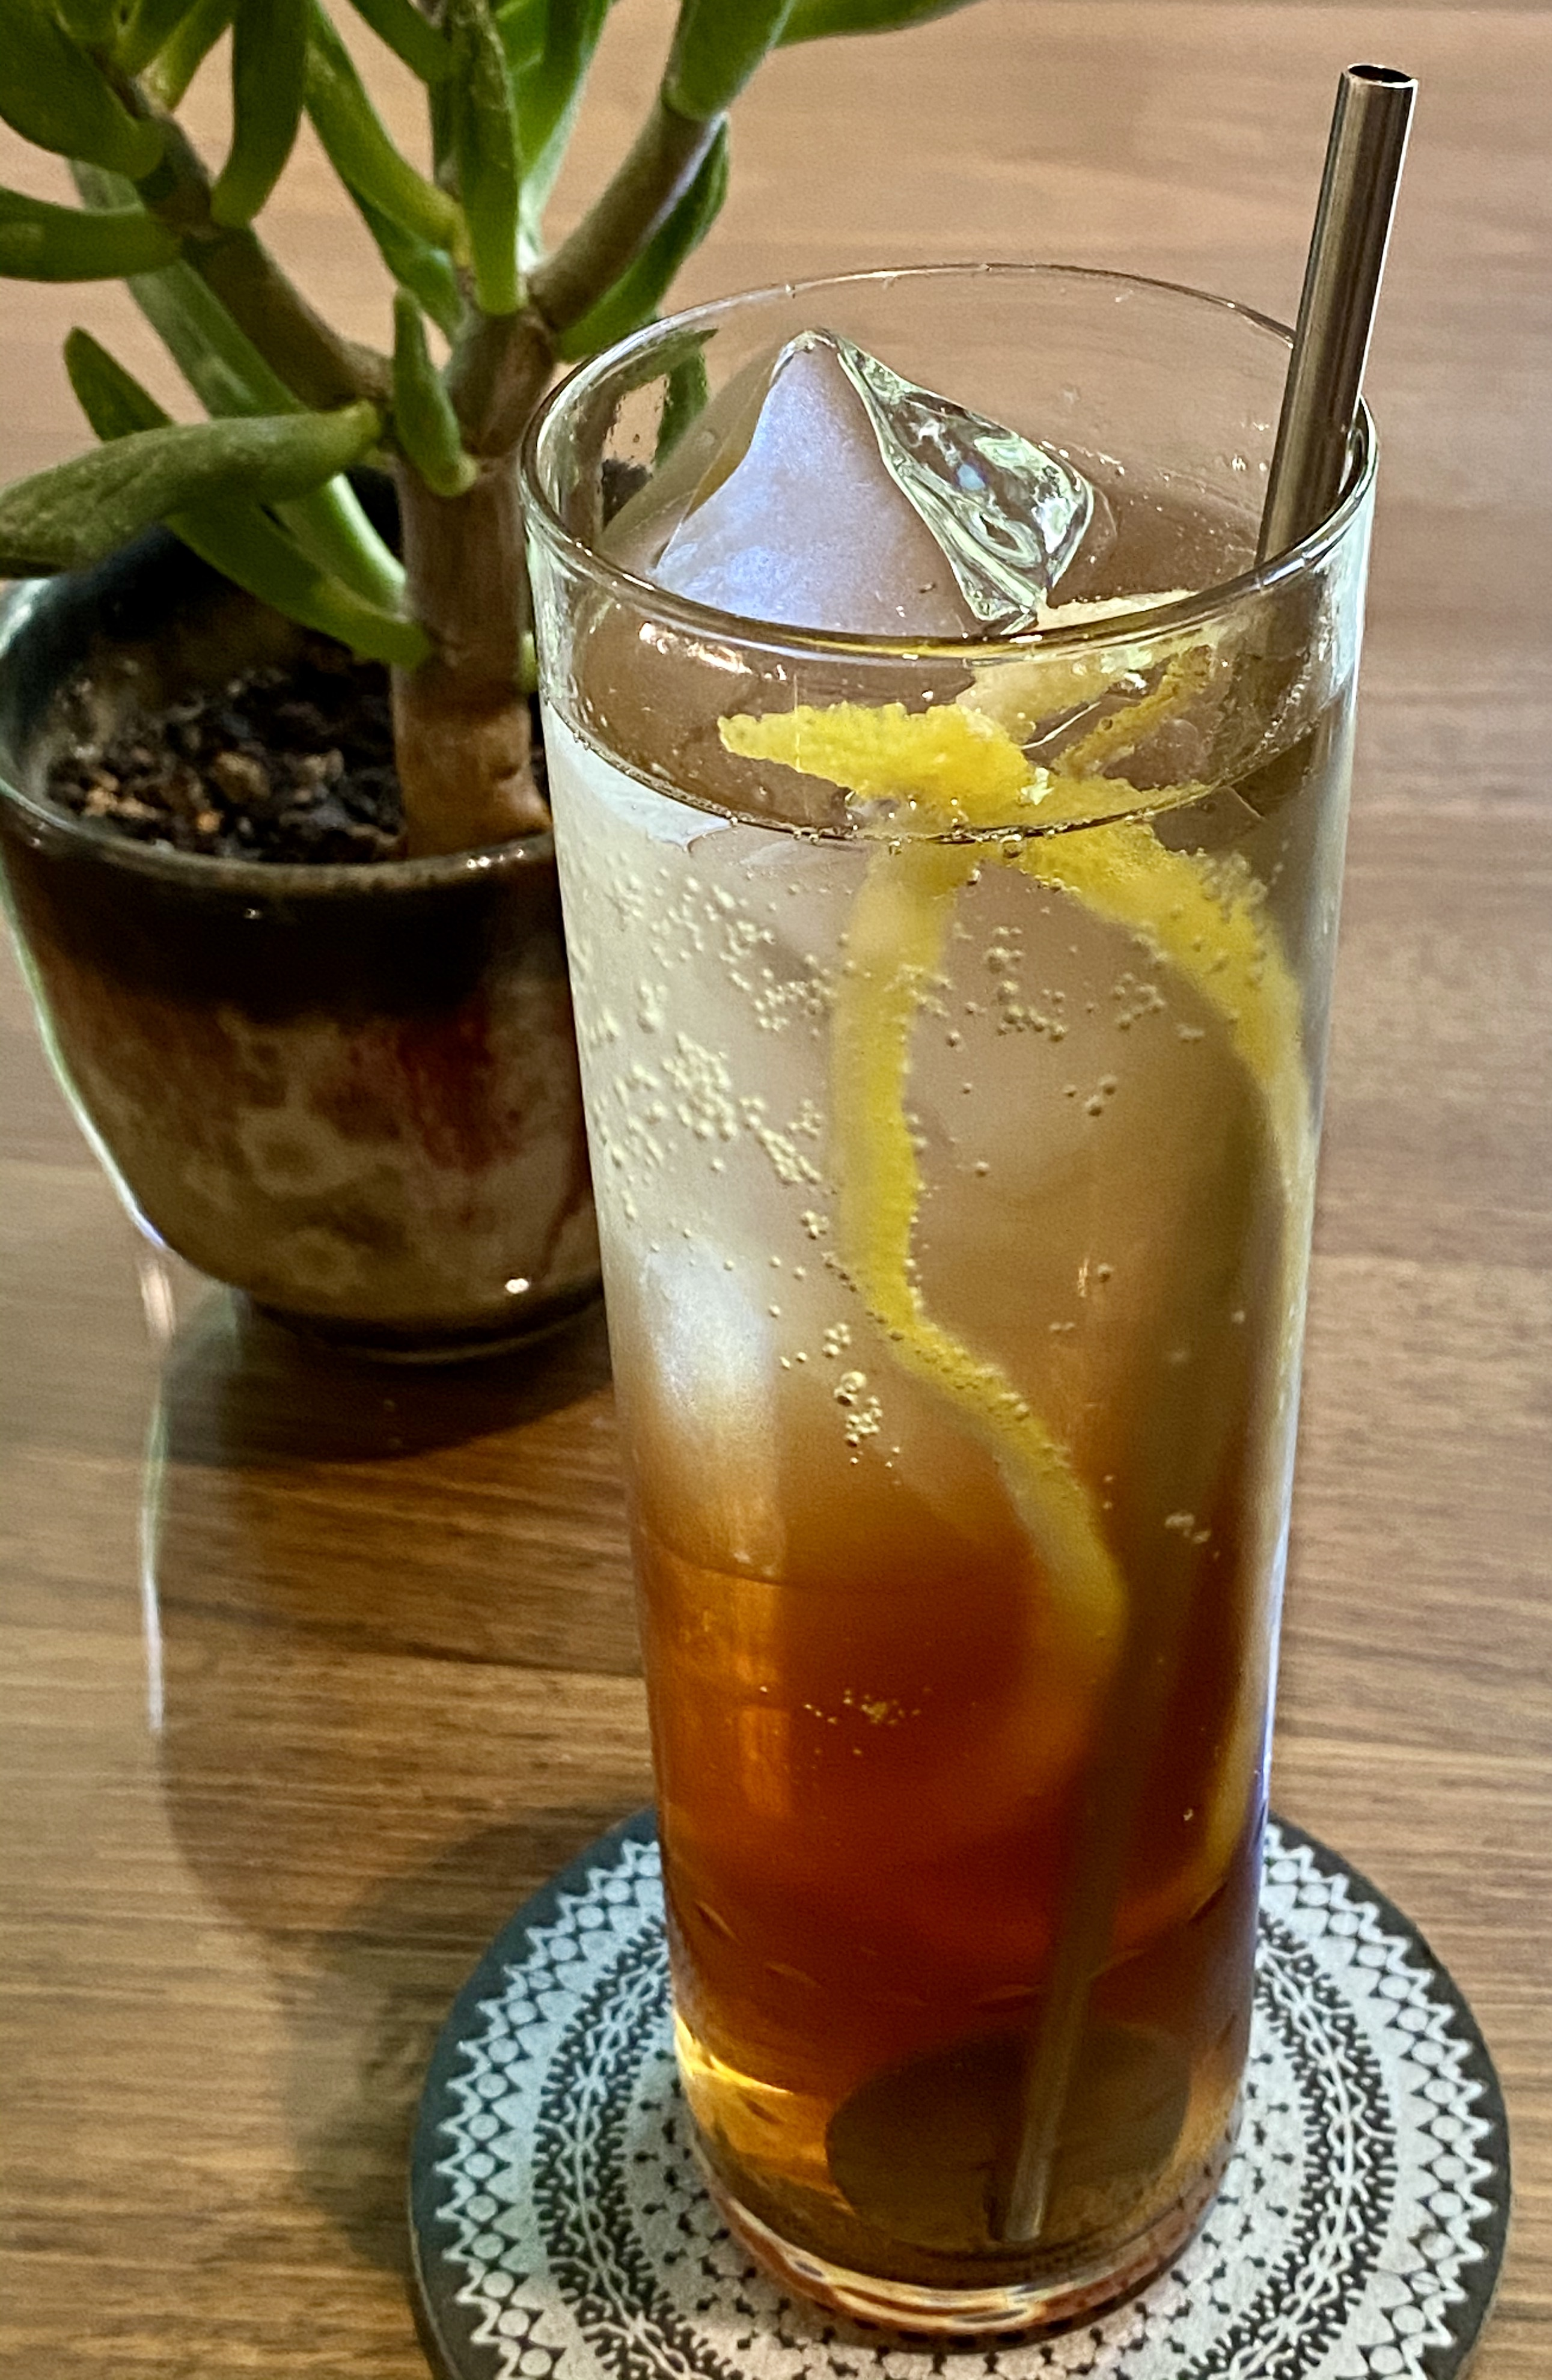 An example of the Berry to Ferry, the mixed drink (cocktail) featuring seltzer, Pasubio Vino Amaro, and Mattei Cap Corse Blanc Quinquina; photo by Martin Doudoroff